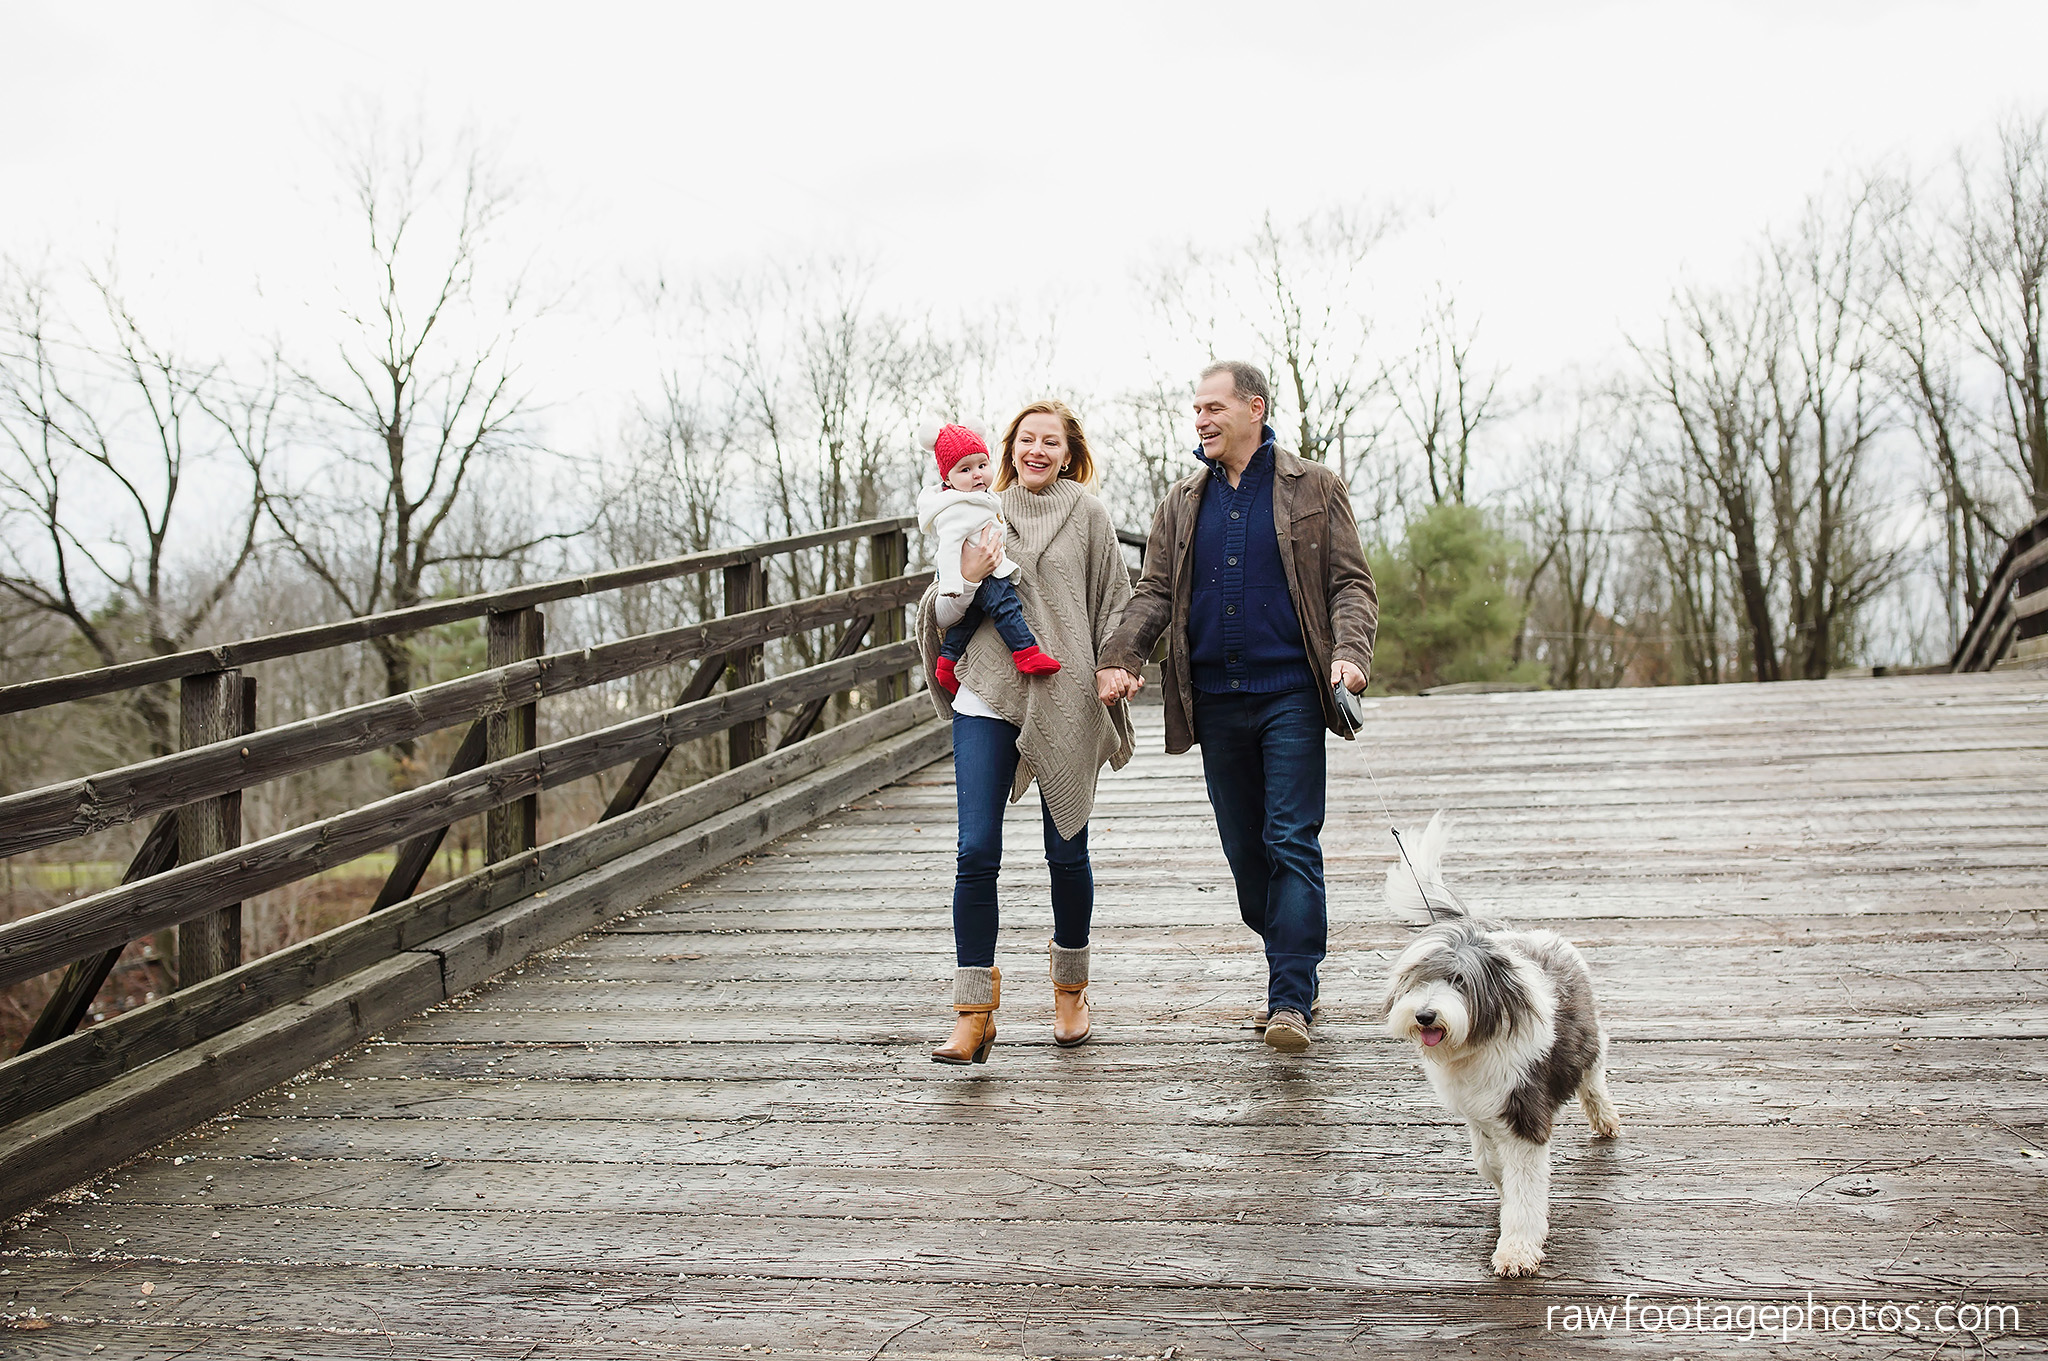 london_ontario_family_session_greenhouse-train_bridge-baby_girl-dog-raw_footage_photography002.jpg